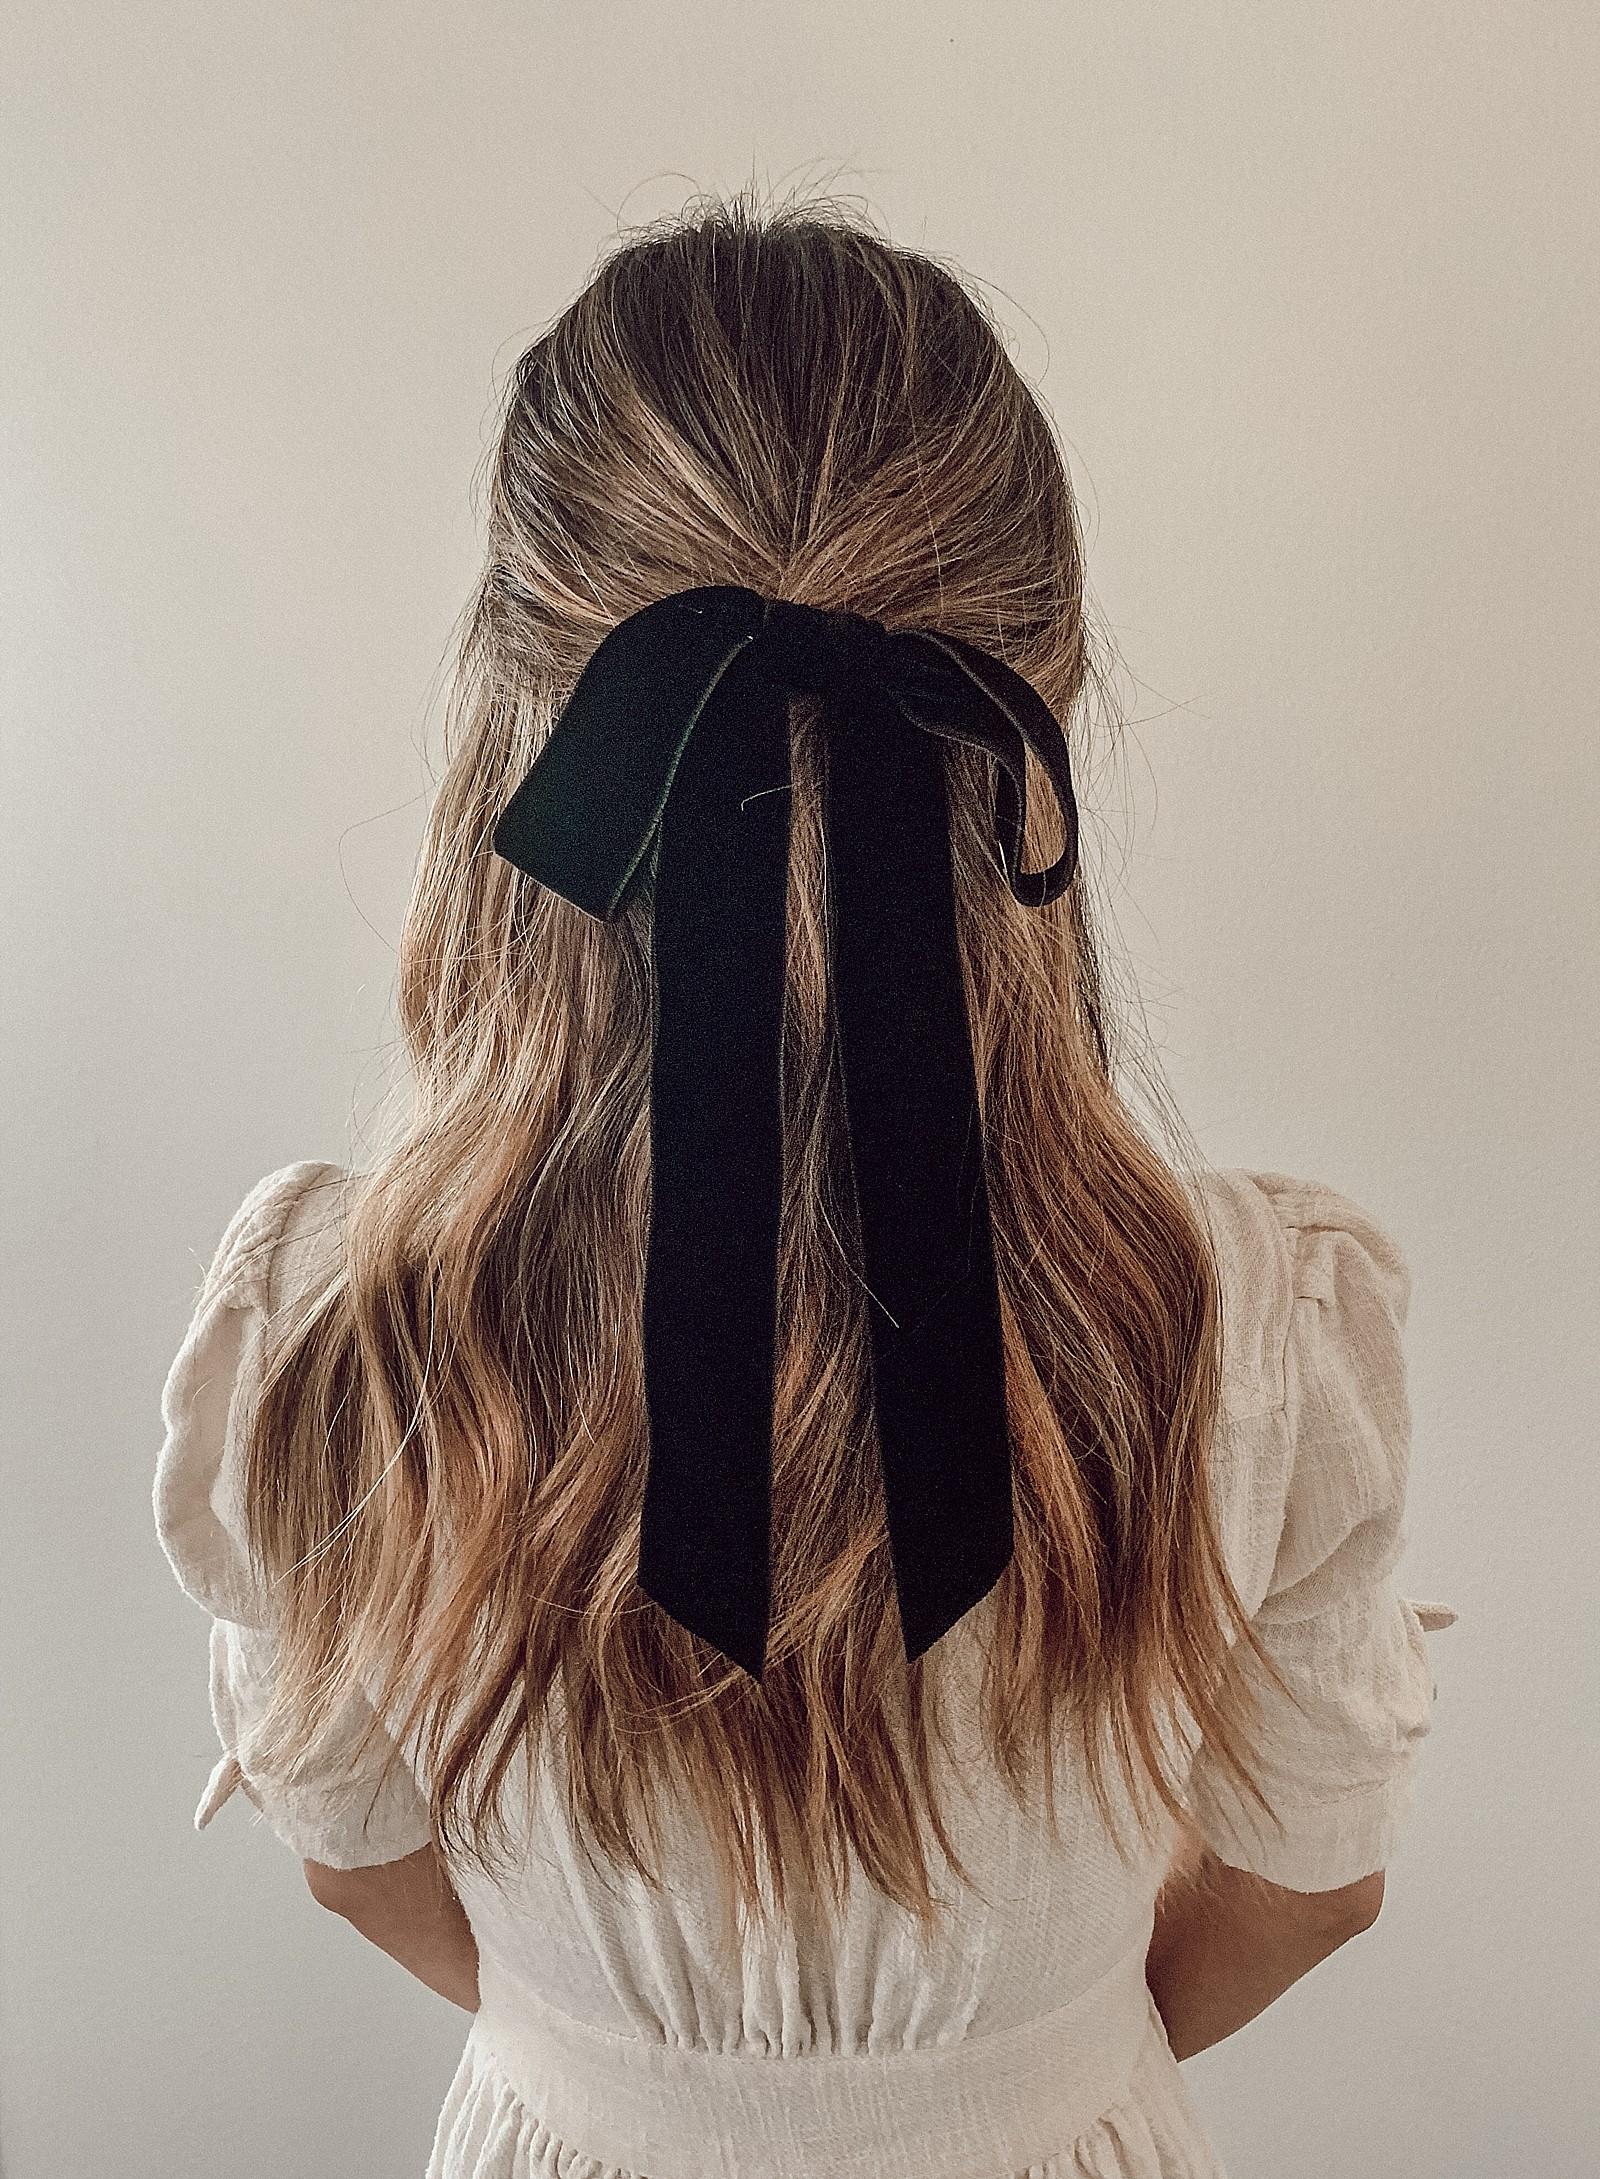 Tape-in-hair-extensions-before-after_0002